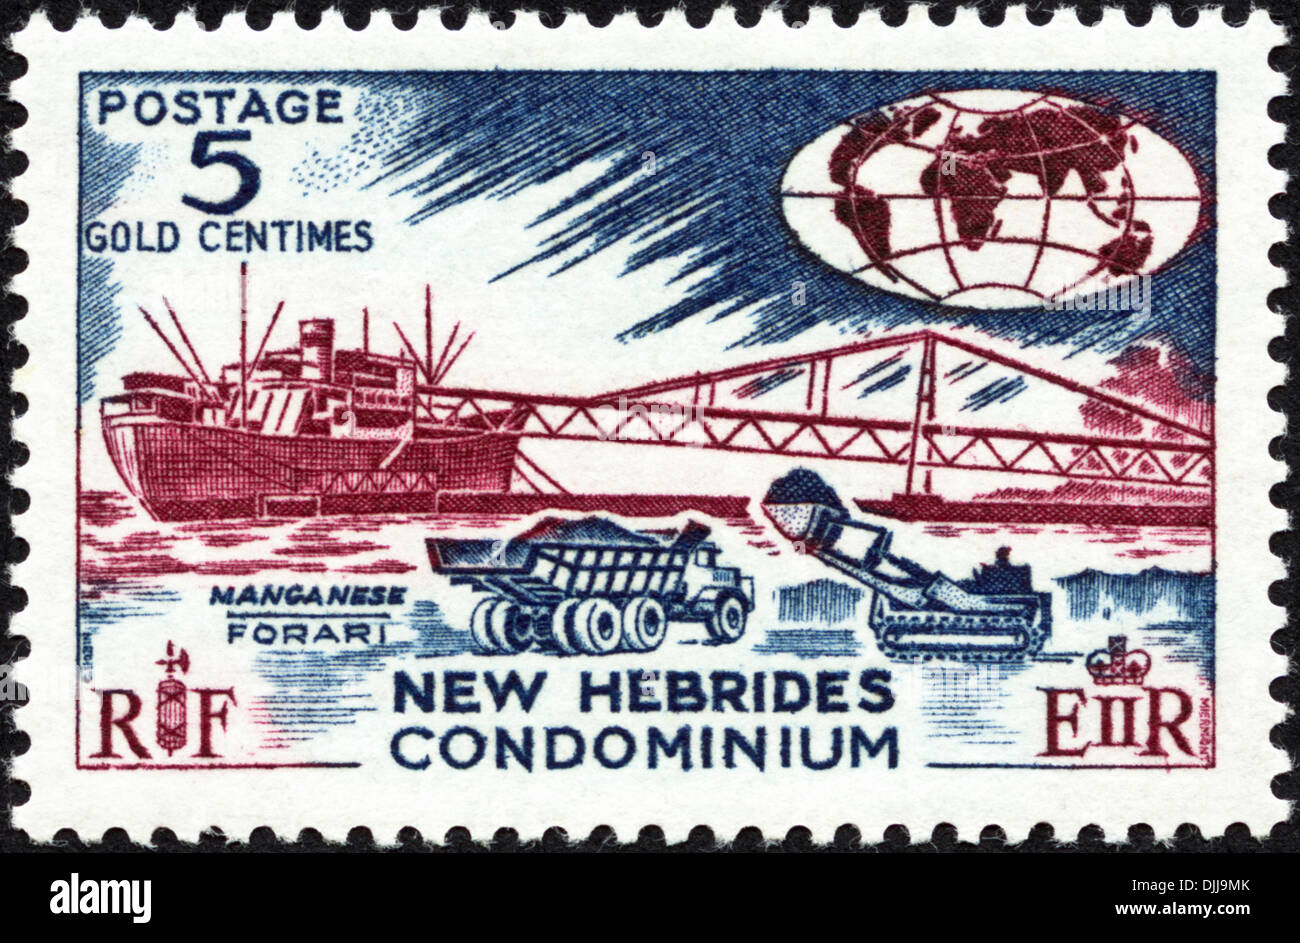 postage stamp New Hebrides Condominium 5c featuring Manganese Forari issued 1966 Stock Photo